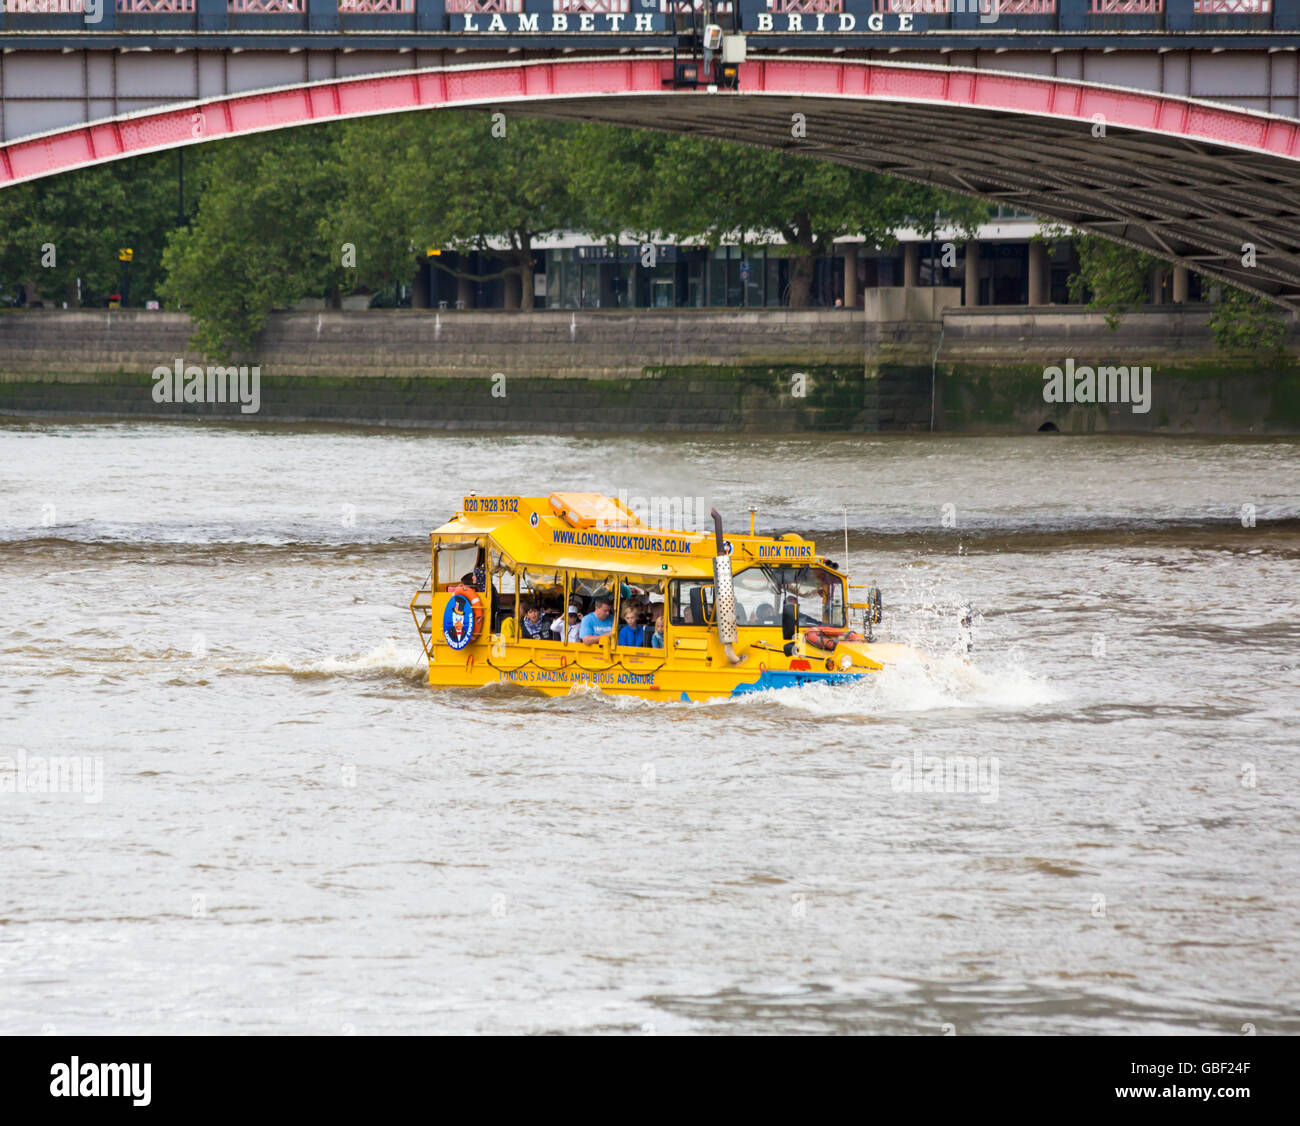 London Duck Tours amphibious vehicle boat going along River Thames under Lambeth Bridge, London in July - Stock Image